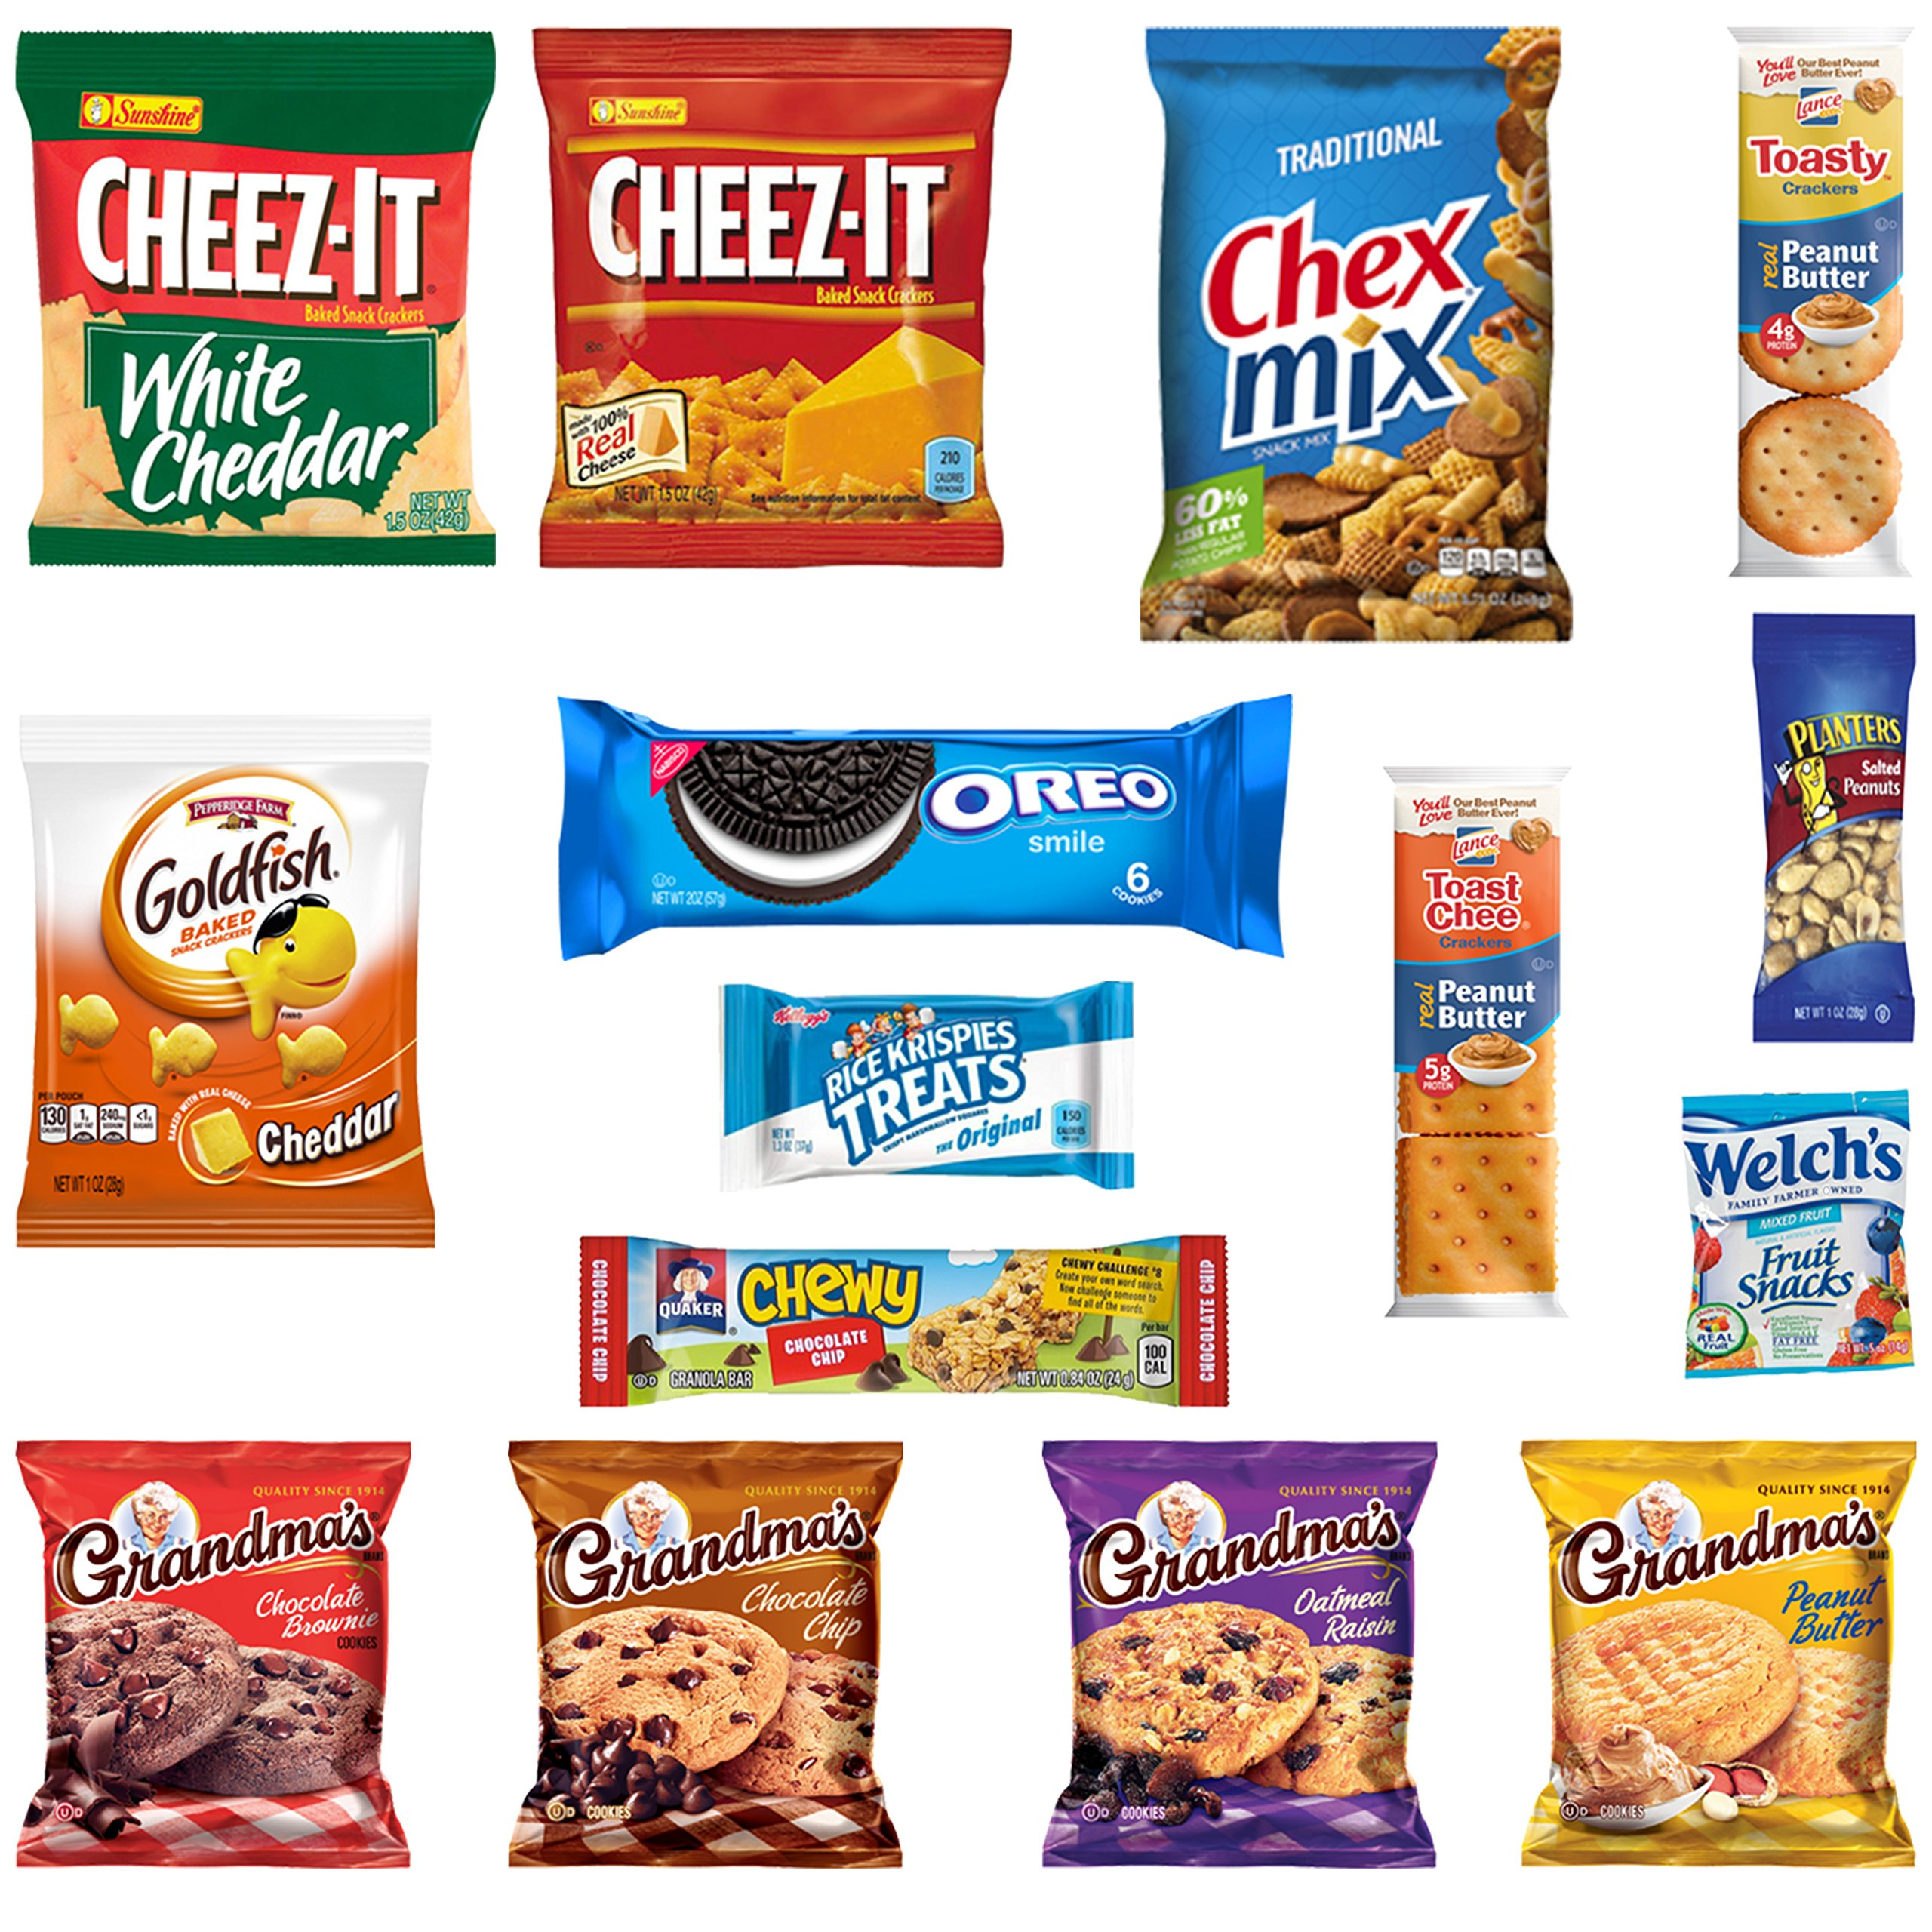 Healthy Snacks, Chips, Cookies, Crackers Mix Assortment Care Package Sampler (15 Count)